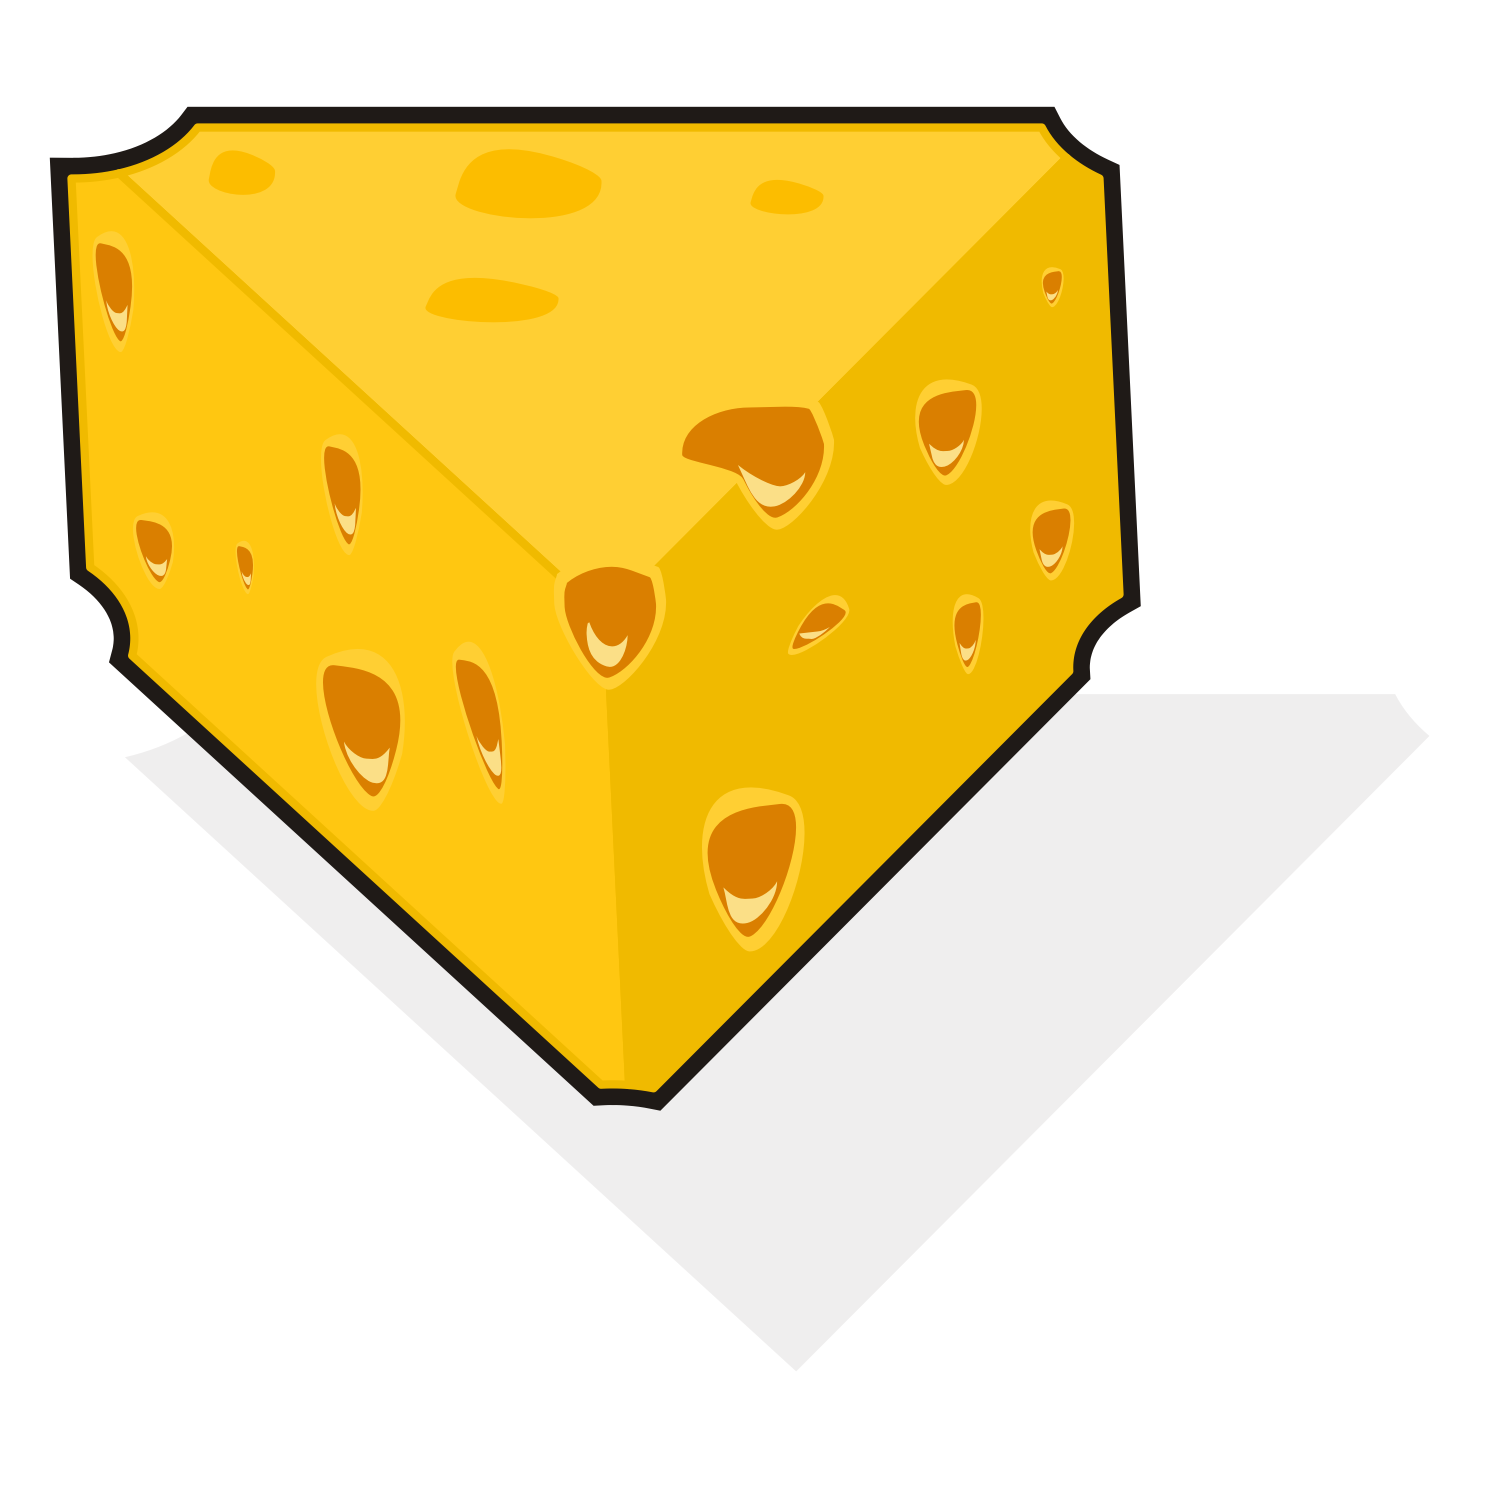 3D vector illustration of a slice of cheese